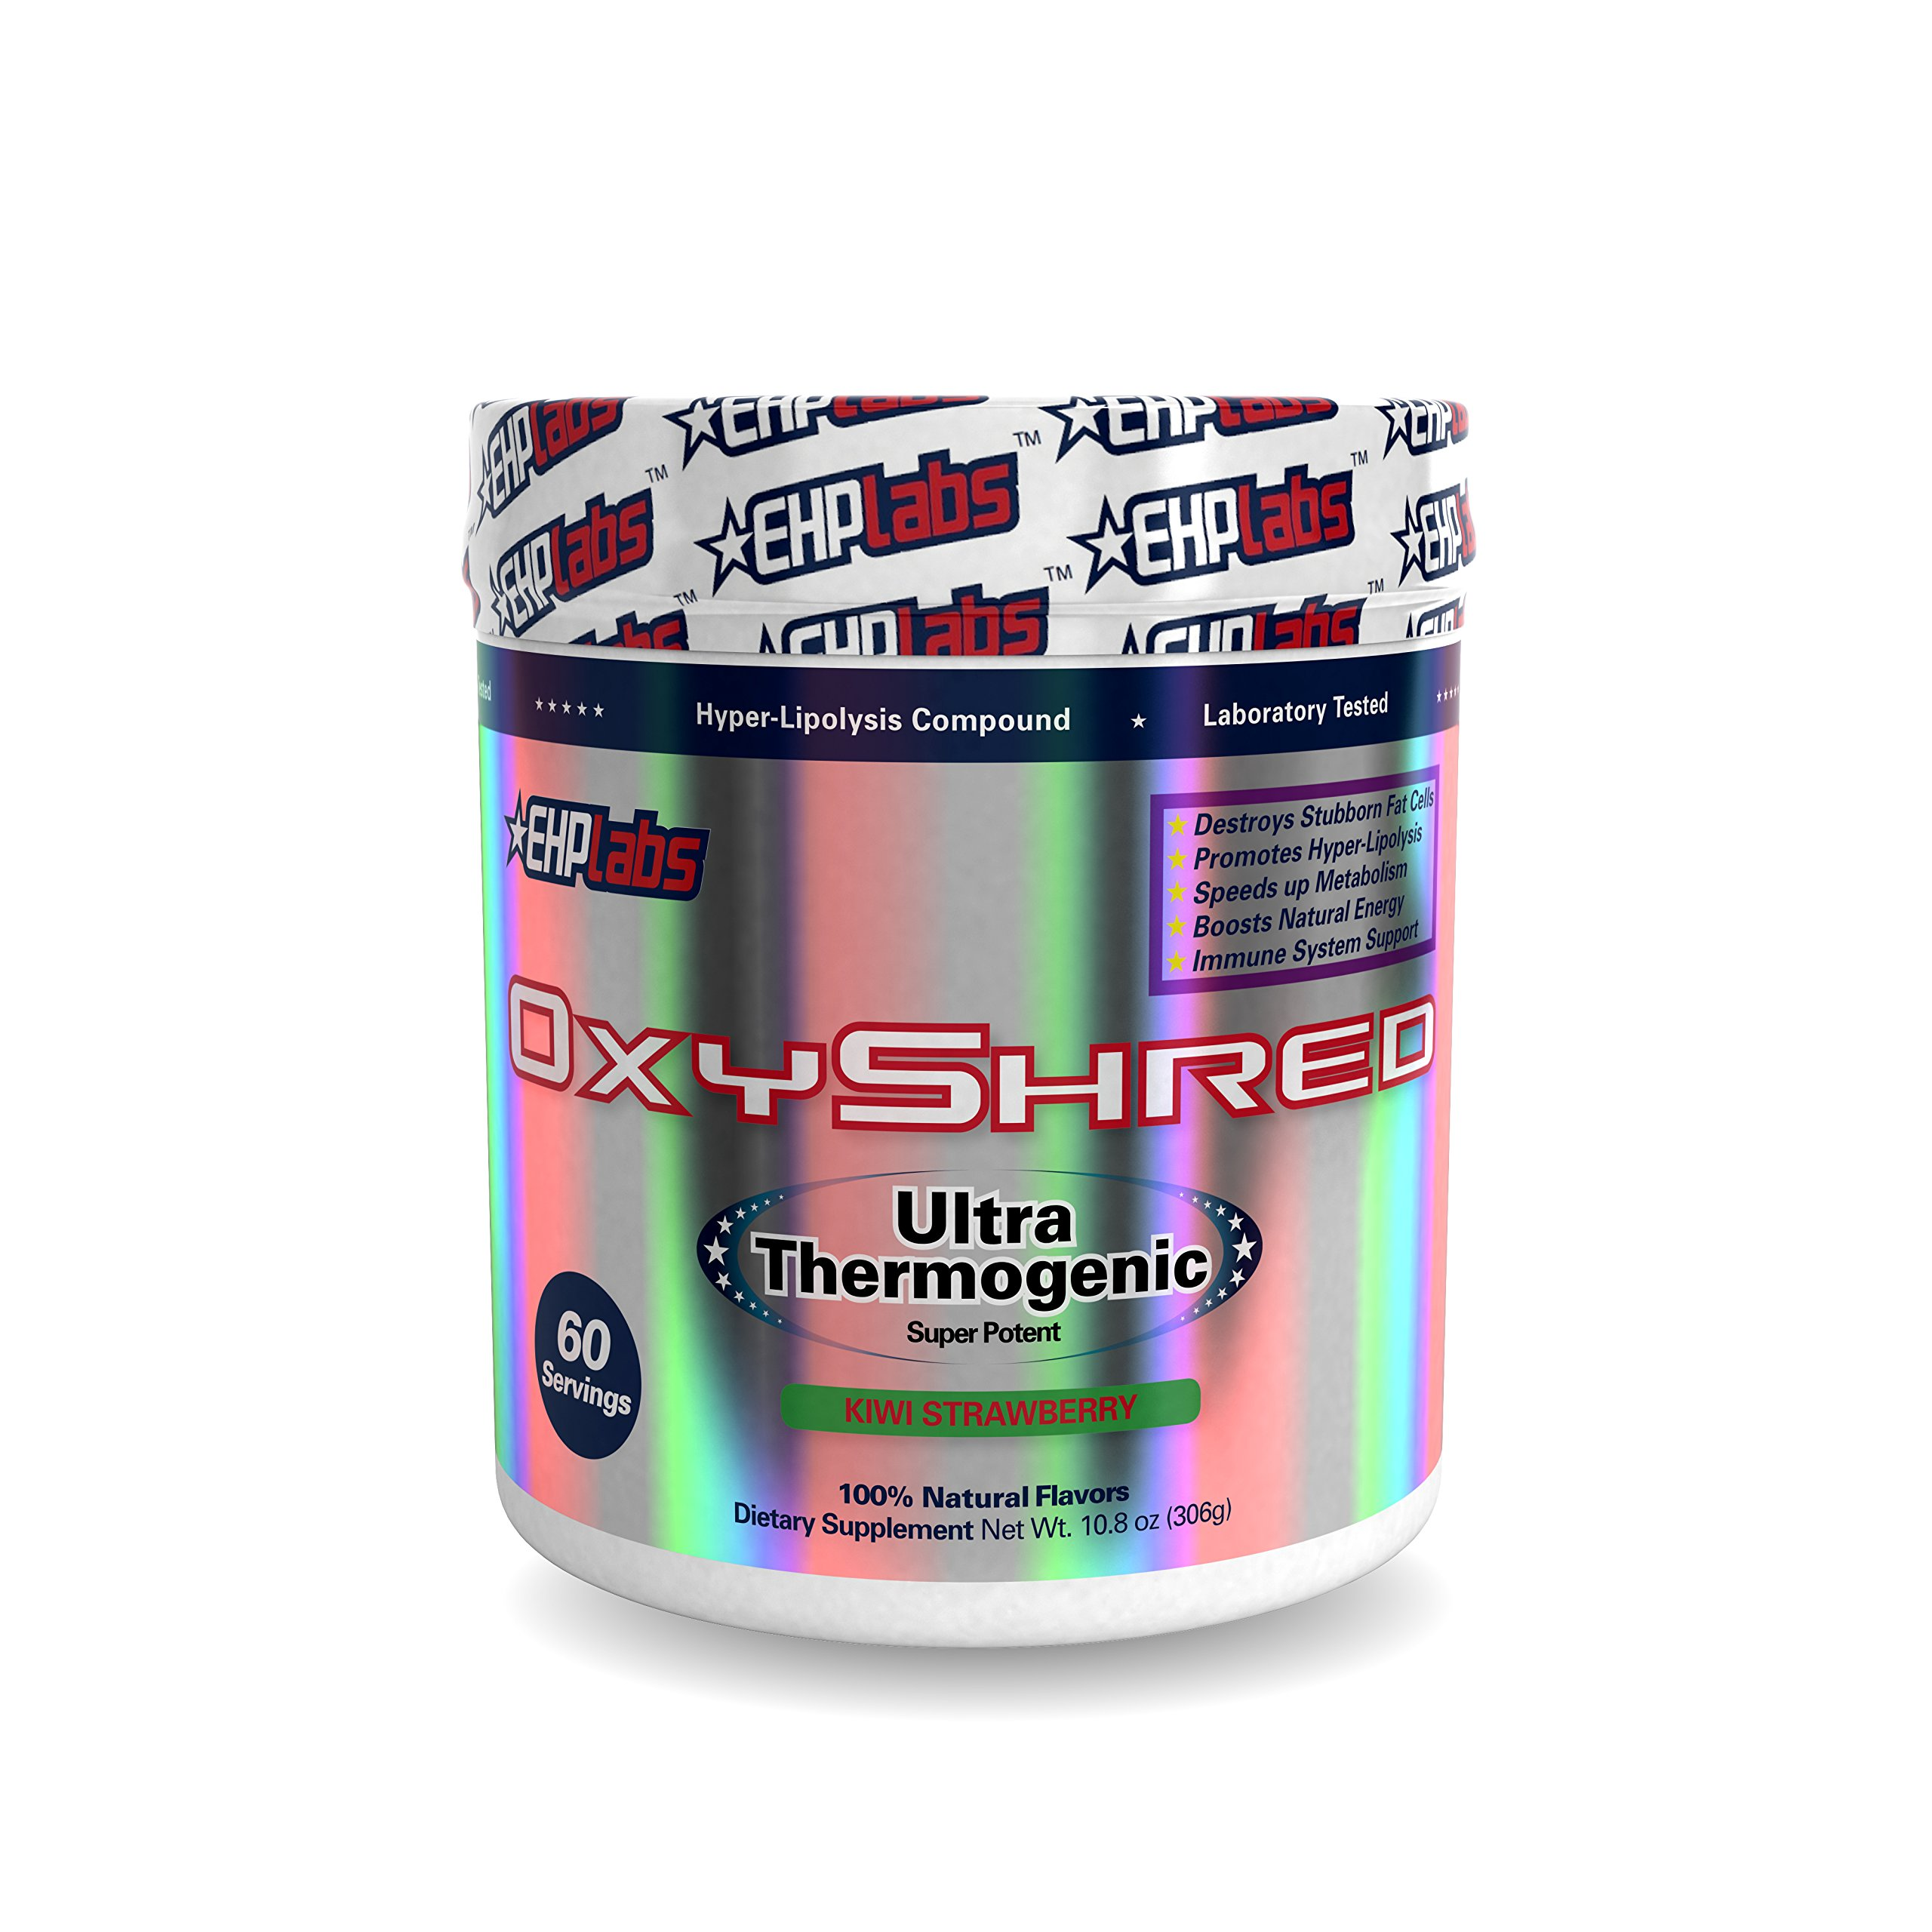 EHPlabs OxyShred Thermogenic Fat Burner Boost Metabolism, Low Stimulant, Destroy Stubborn Fat Cells (60 Servings)(Kiwi Strawberry)